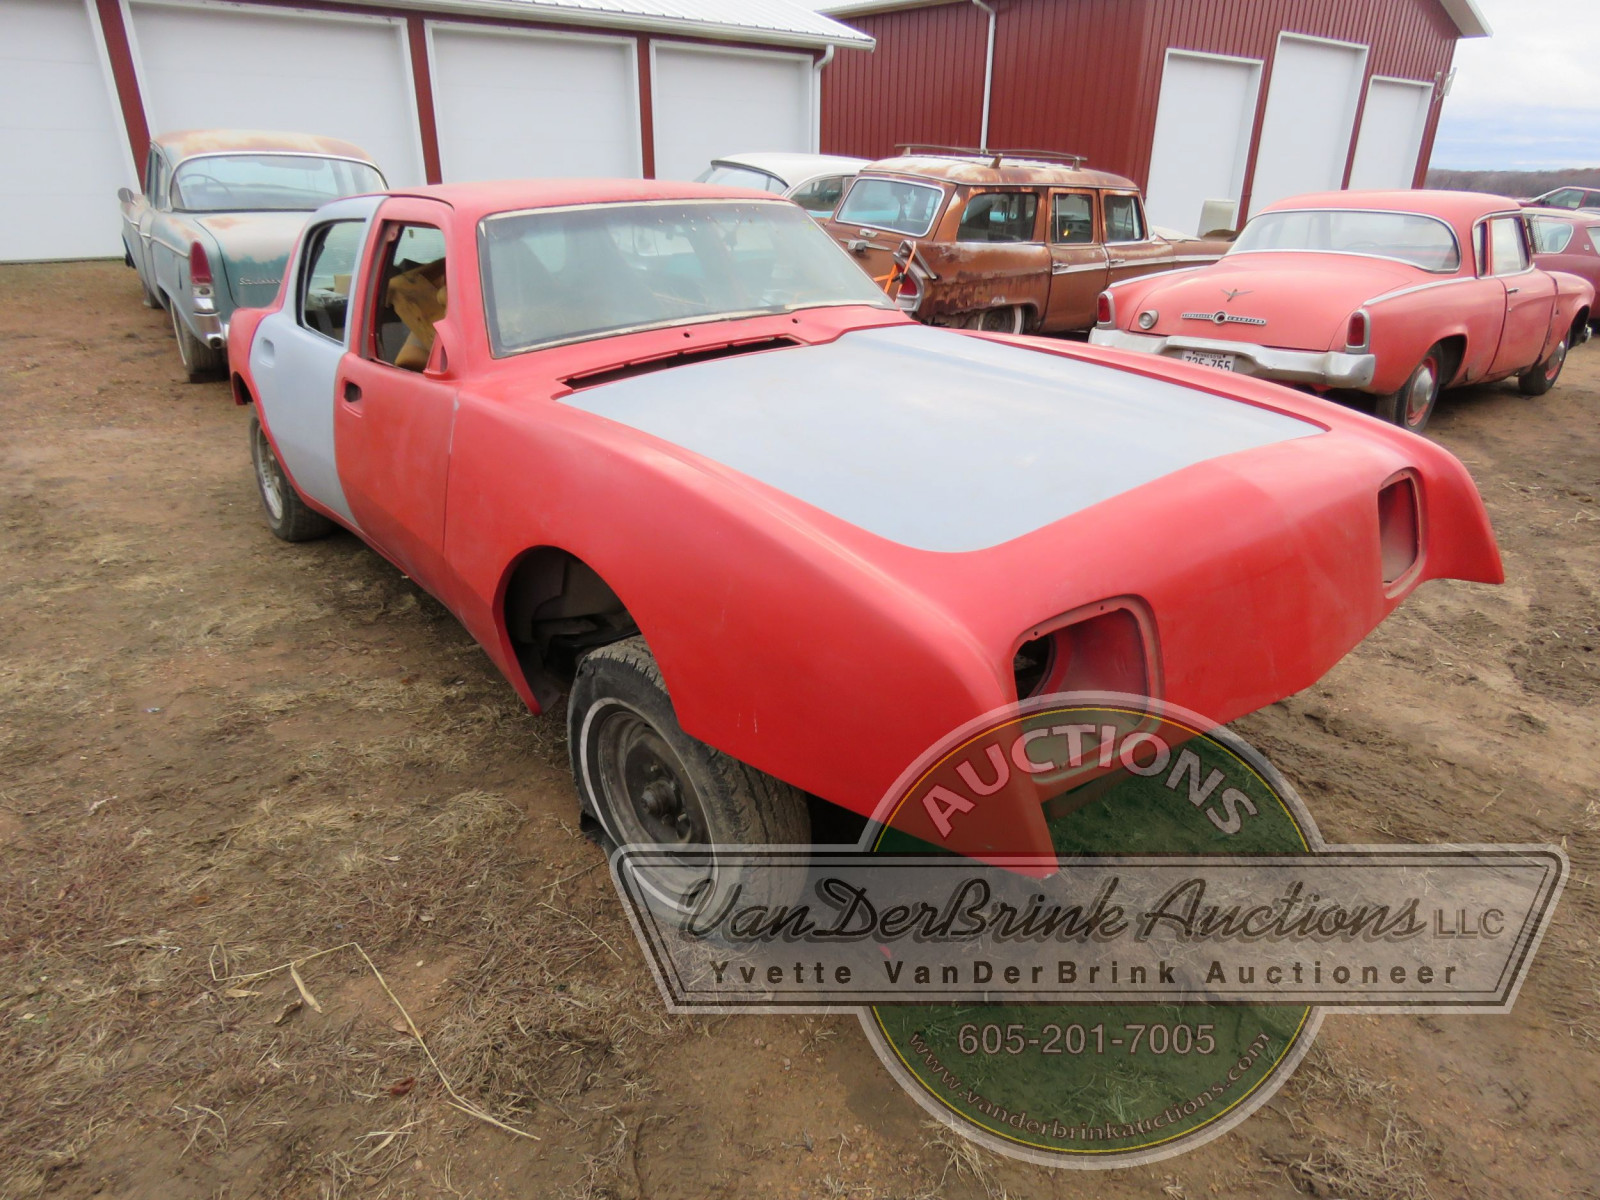 1990 Studebaker Avanti 4dr Sedan Project - Image 3